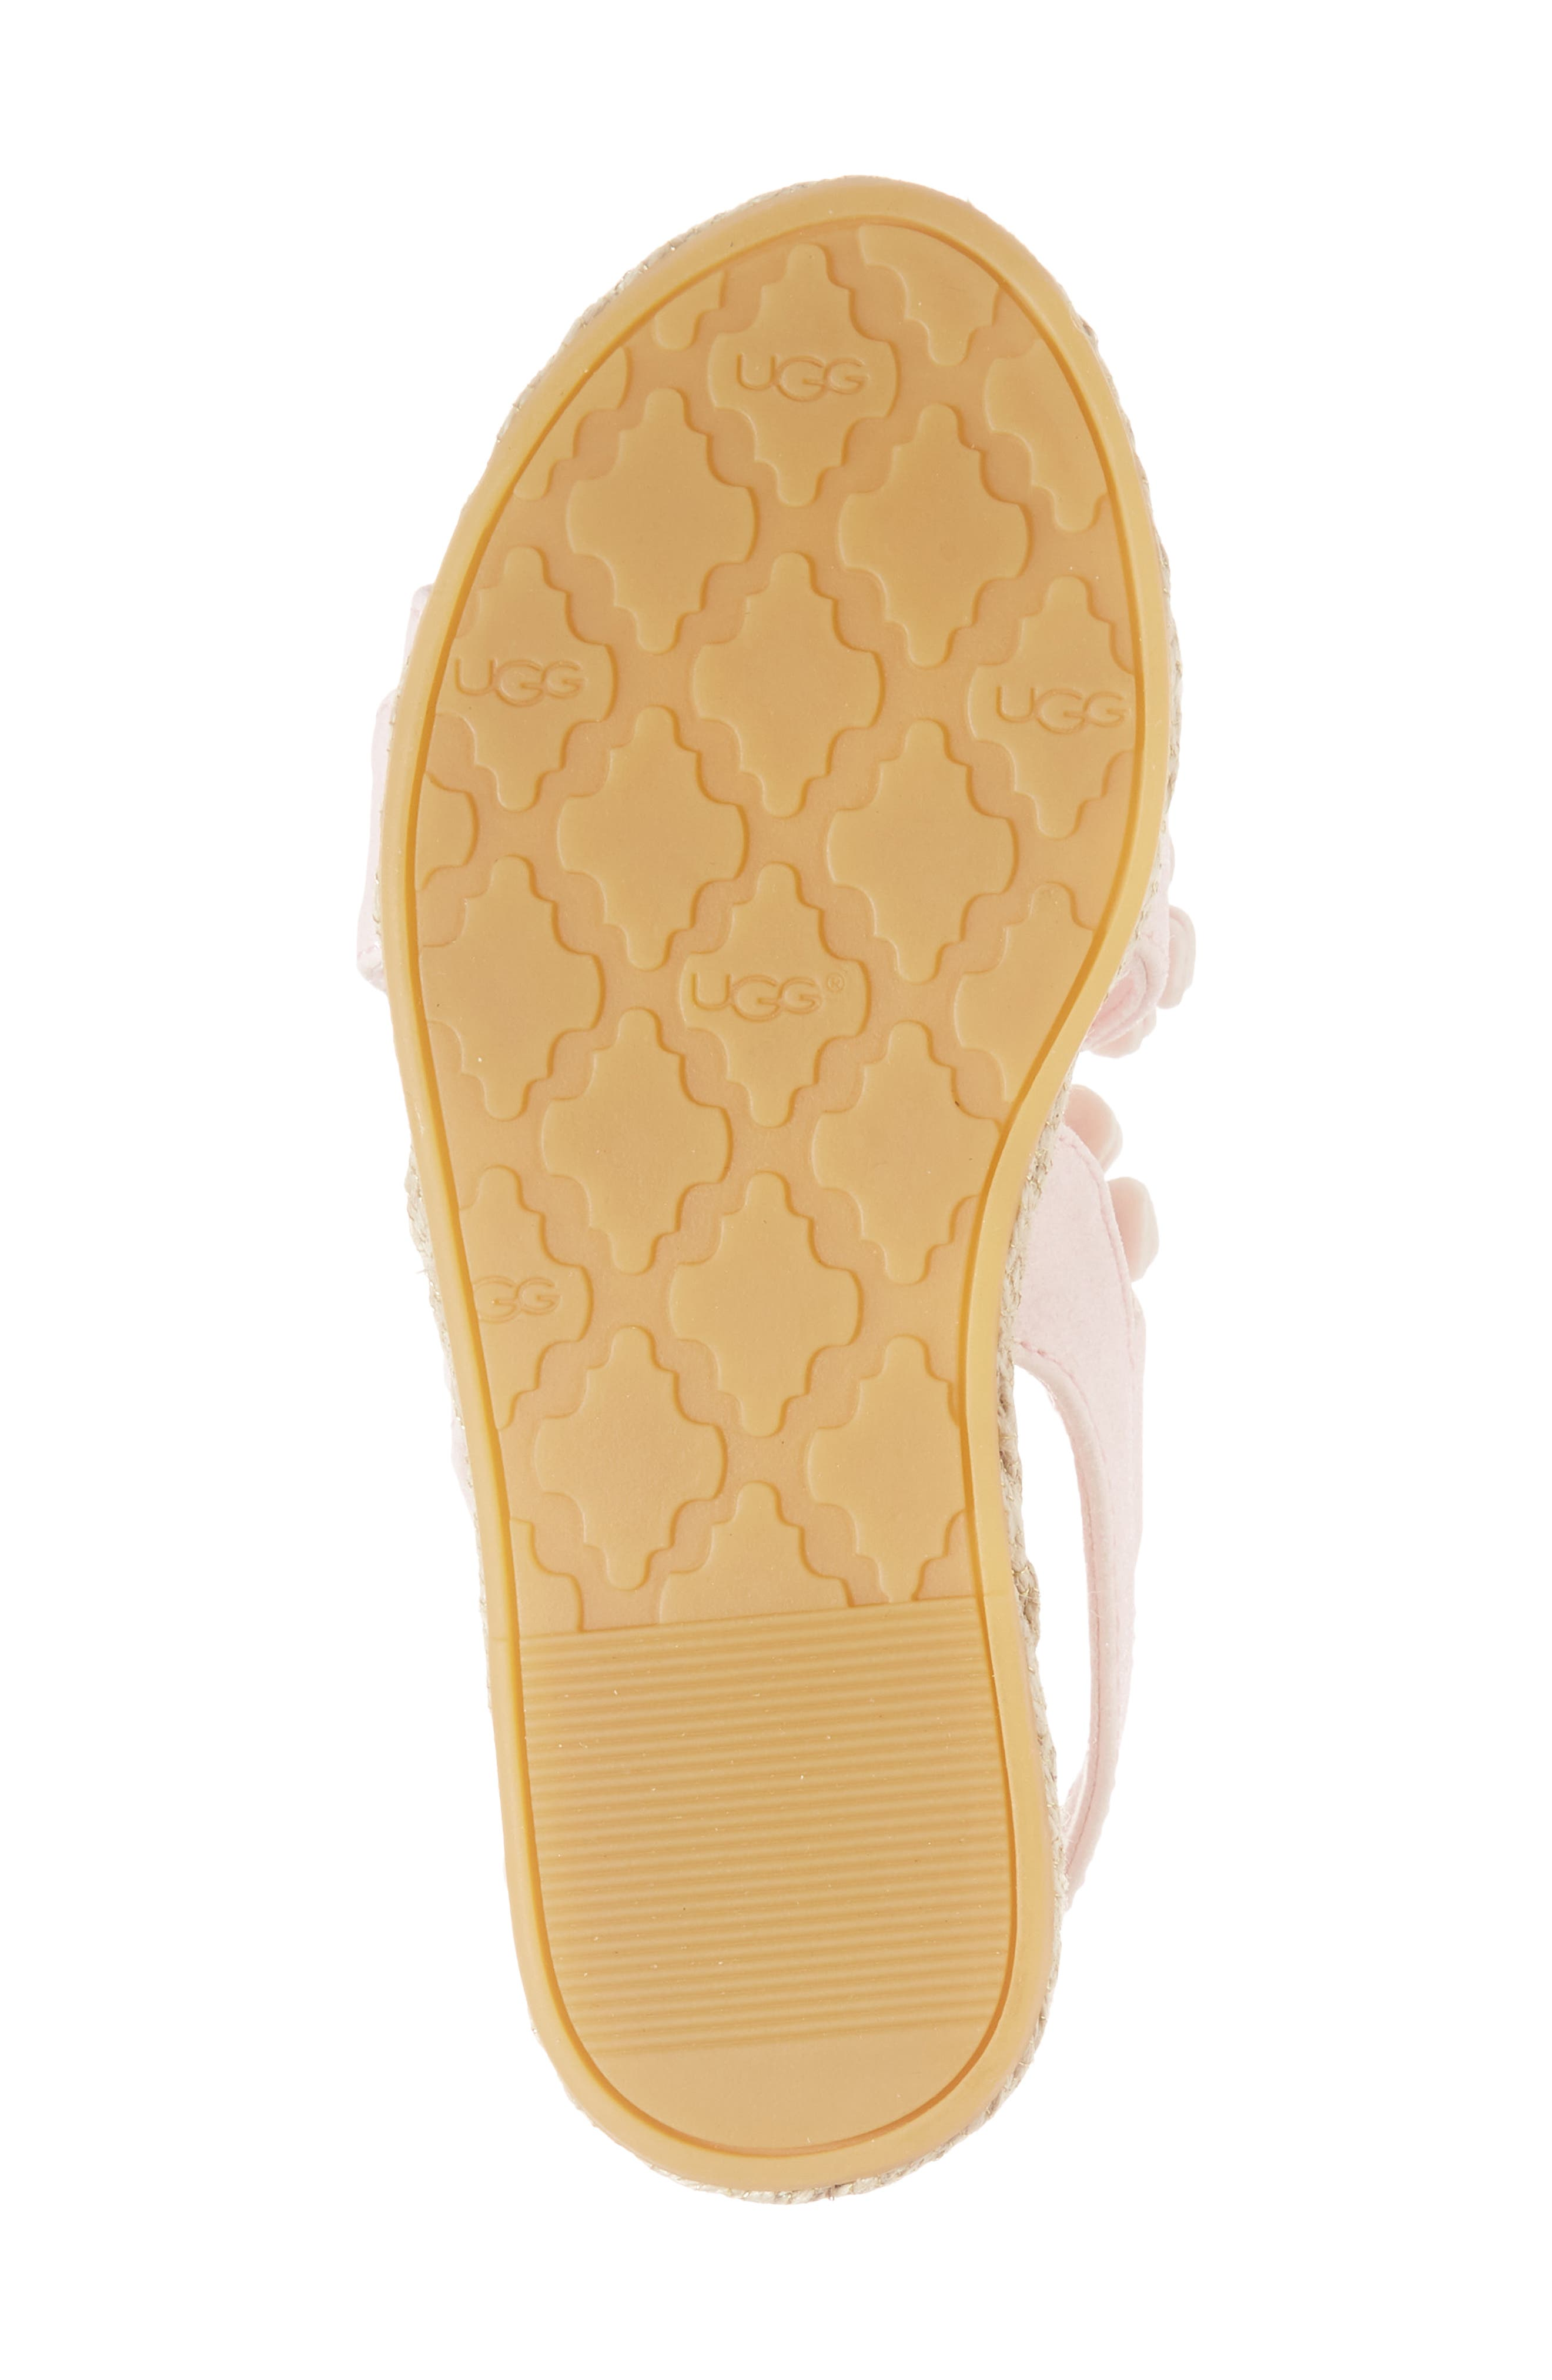 Allairey Sparkles Espadrille Sandal,                             Alternate thumbnail 6, color,                             SEASHELL PINK